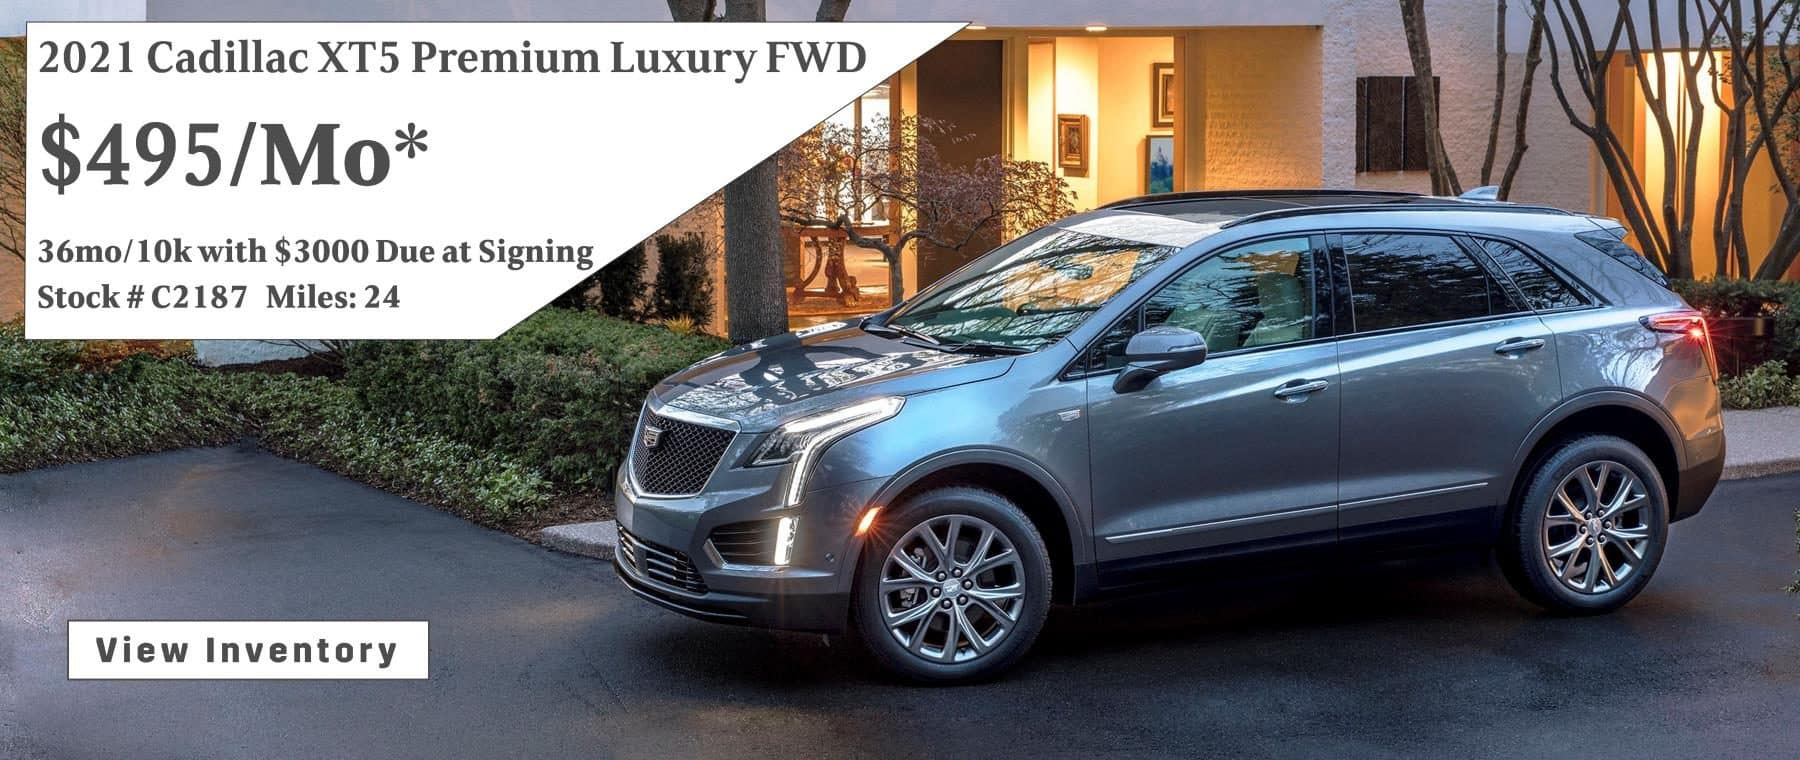 October 2021 XT5 Lease Special $495/mo.*